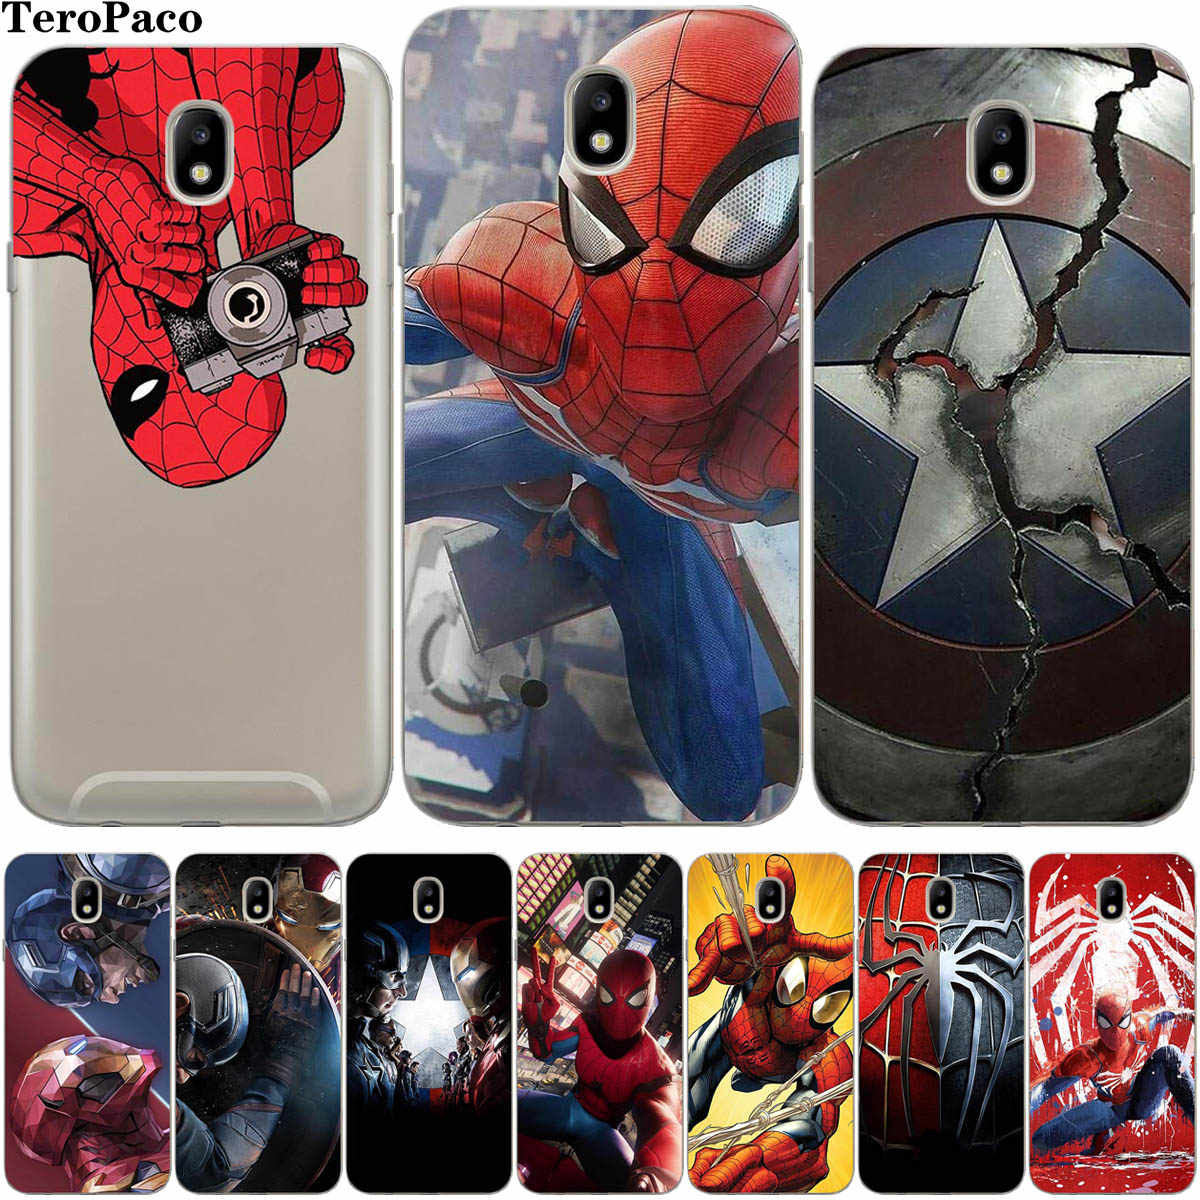 Marvel SpiderMan IronMan Phone Case For Samsung Galaxy J2 Pro J3 J4 J5 J6 J7 J8 2016 2017 EU Plus 2018 Prime Cover Etui